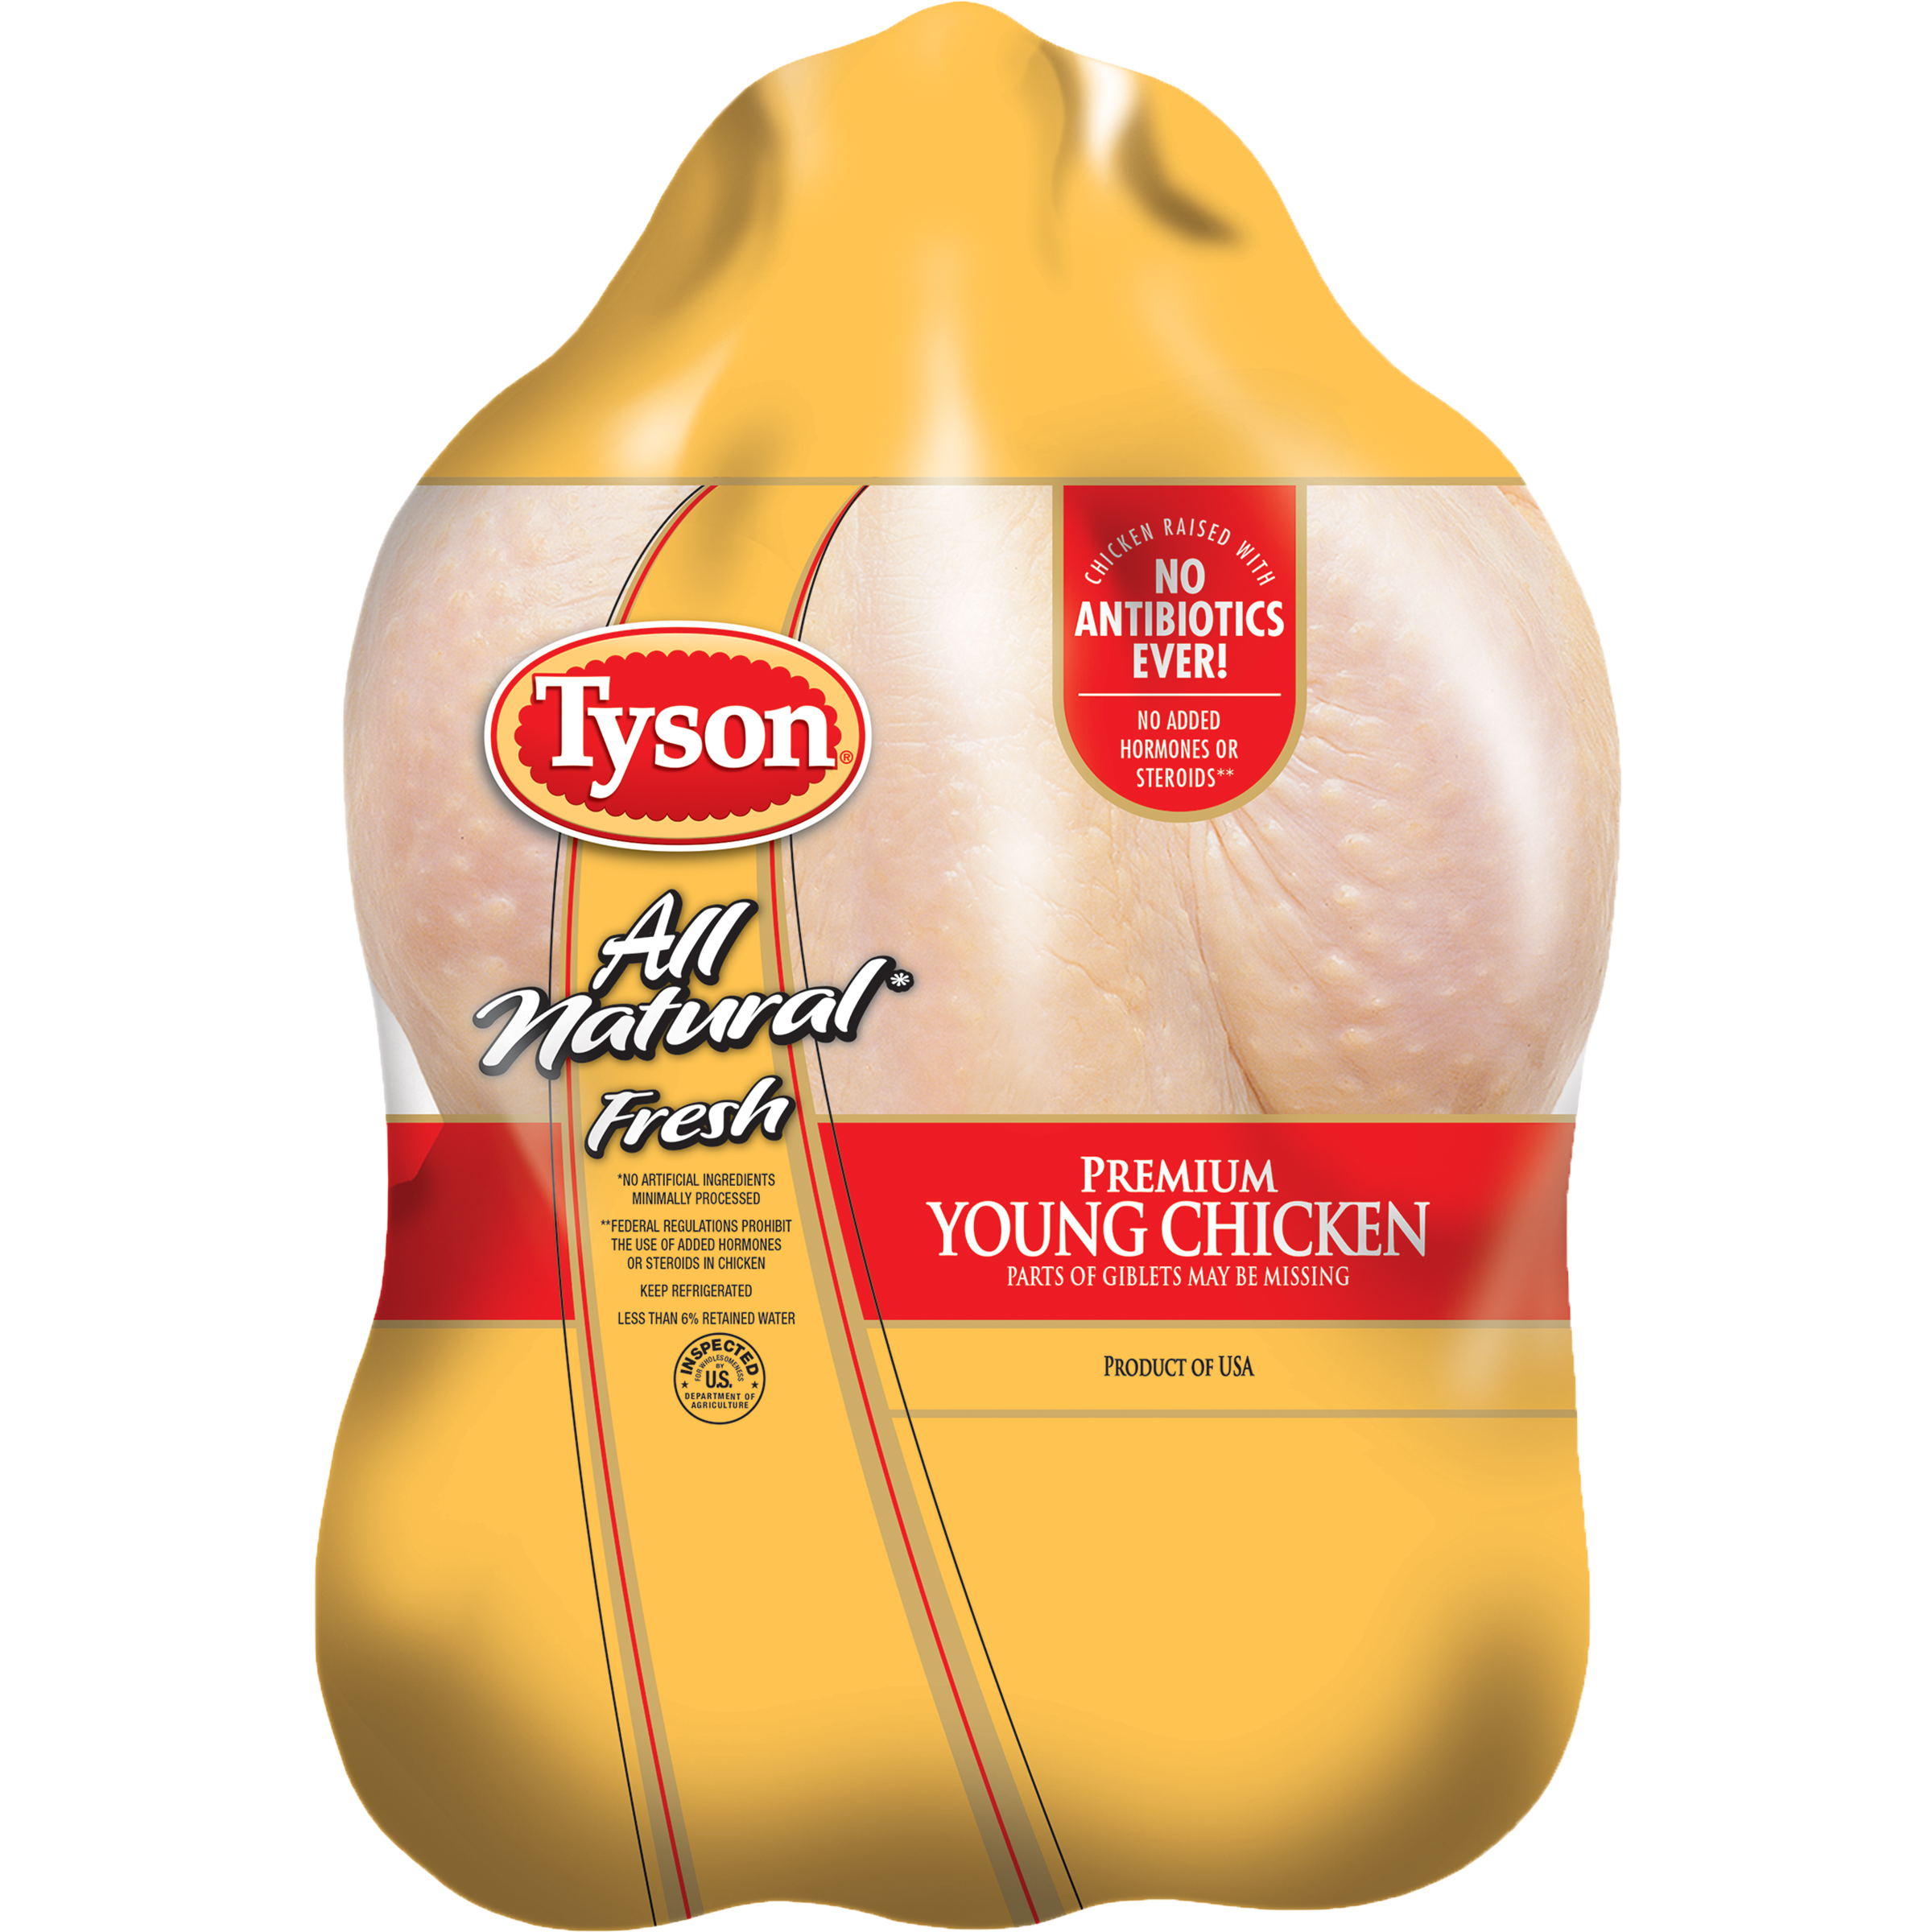 Tyson® All Natural <mark>Fresh</mark> Premium Young Chicken, 5.0-6.5 lbs